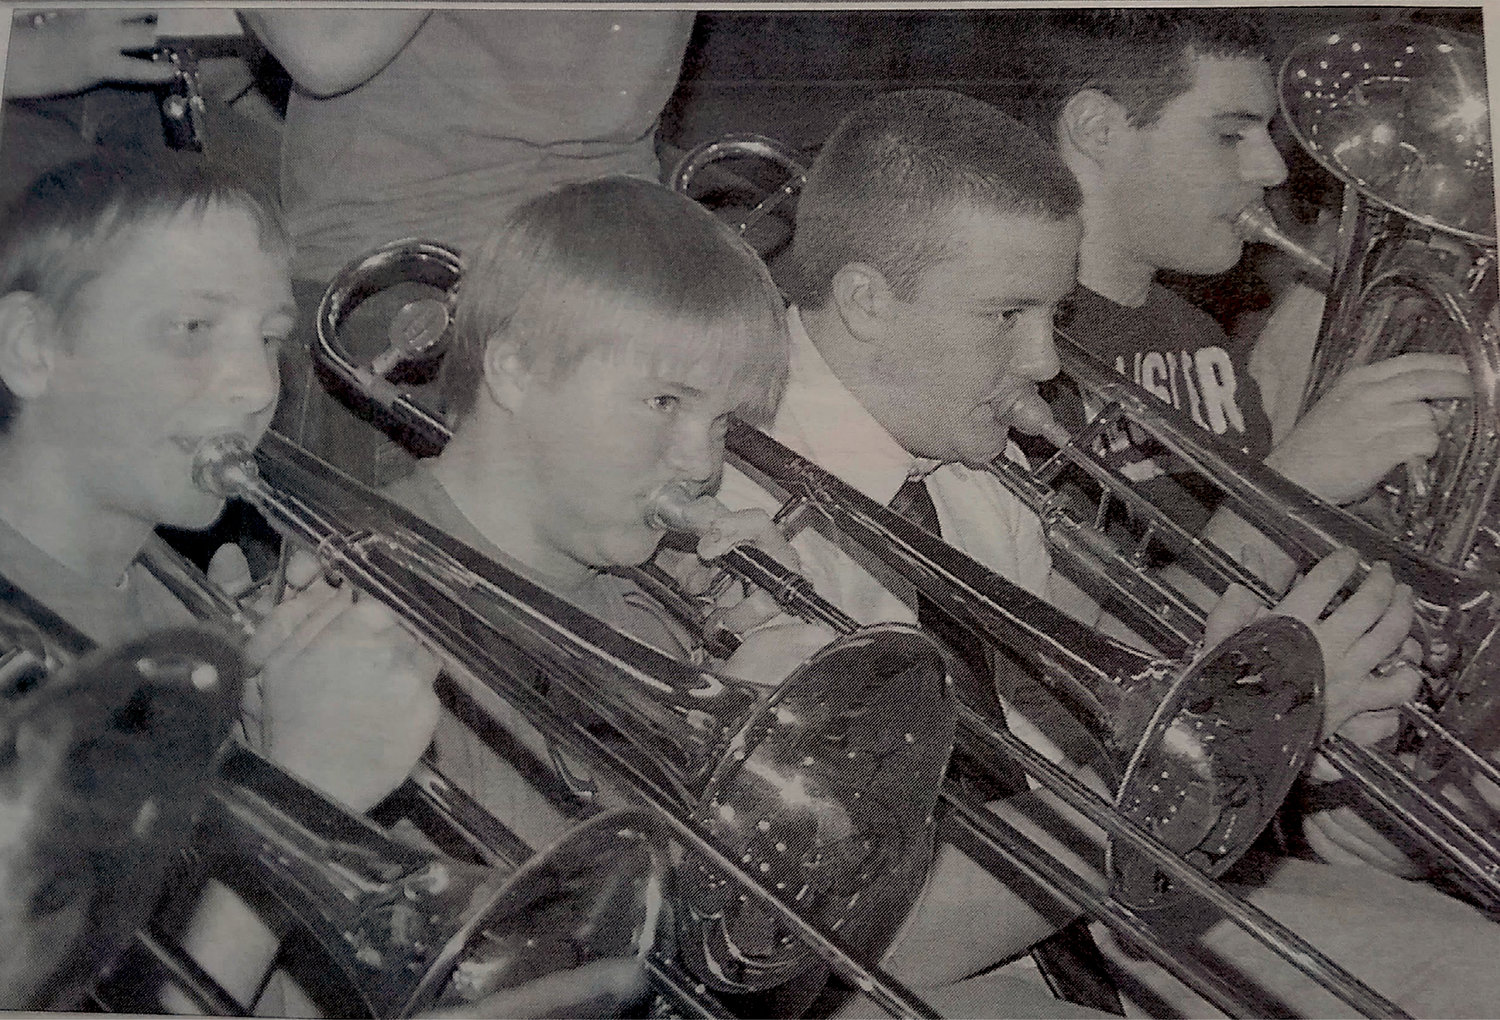 TEN YEARS AGO: When the high school pep band is joined, as it was at home games last week, by the junior high band, the local musicians can shake the rafters. Sixth-grader Brock Bumann, eighth-grader Taylor Nelson, and seventh-grader Tristan Vedvei, all on trombone, played alongside junior Zach Longville on baritone.